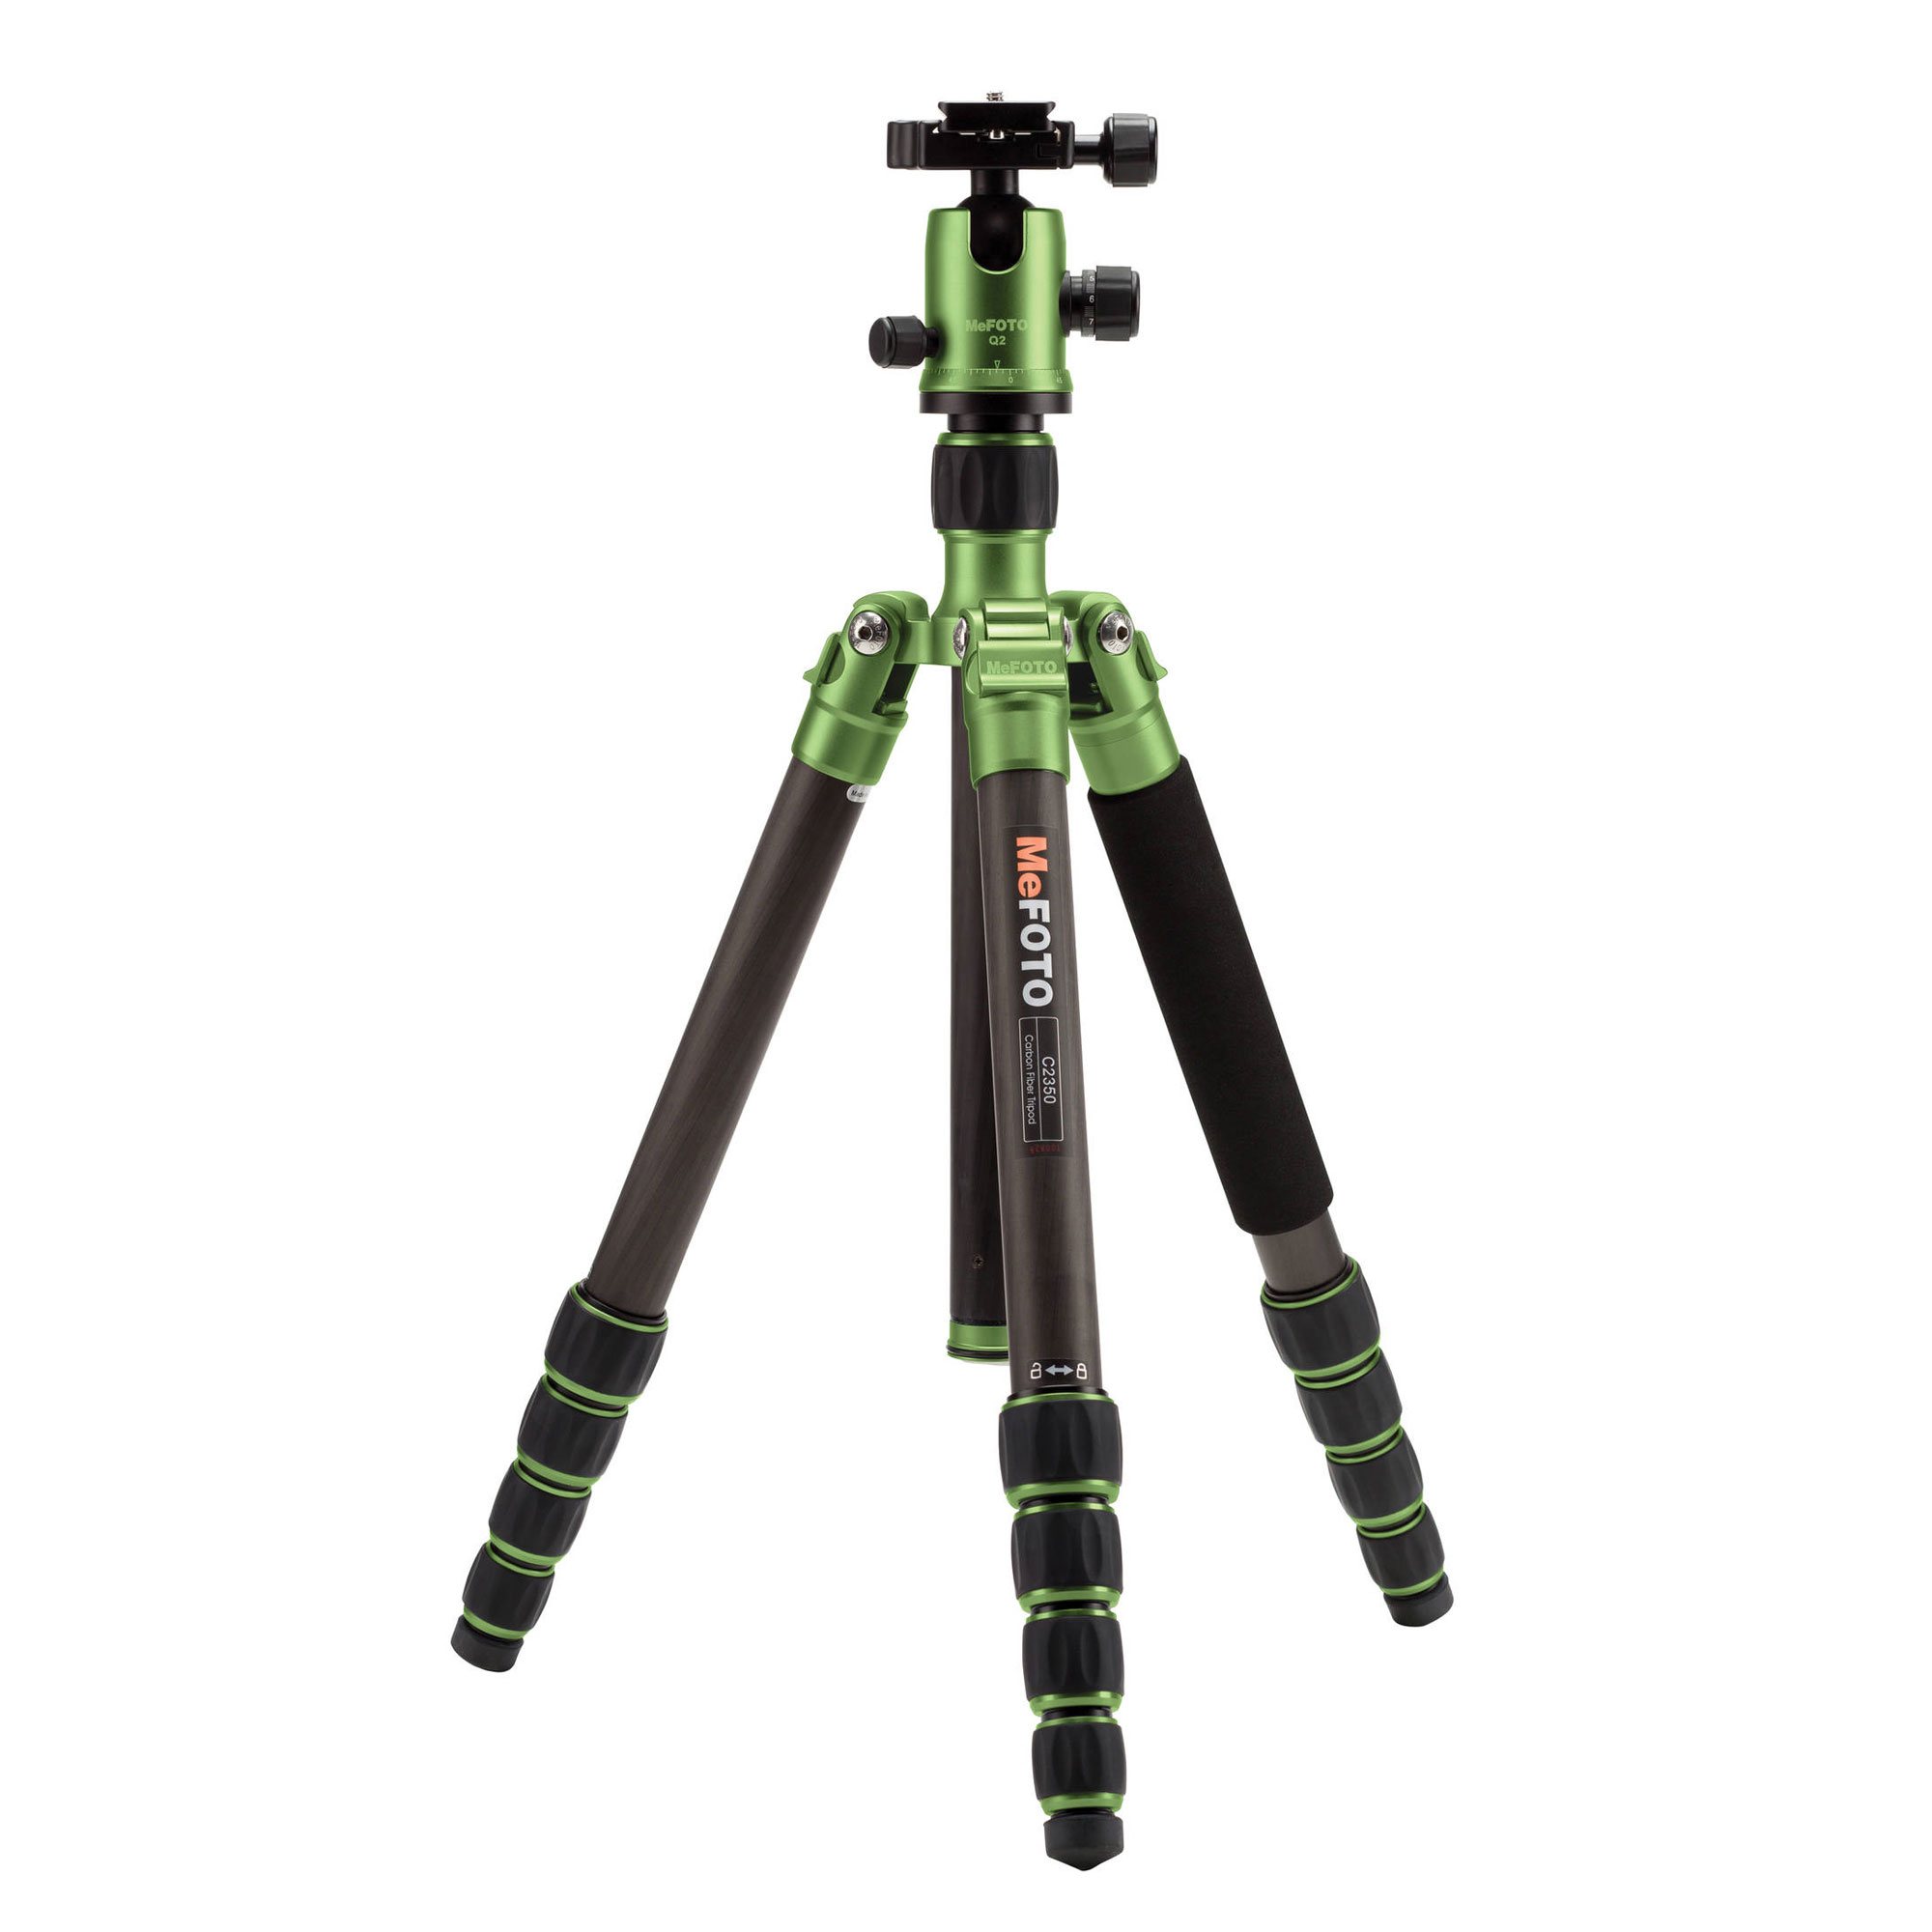 Image of MeFOTO GlobeTrotter Carbon Fiber Travel Tripod Kit (Green)